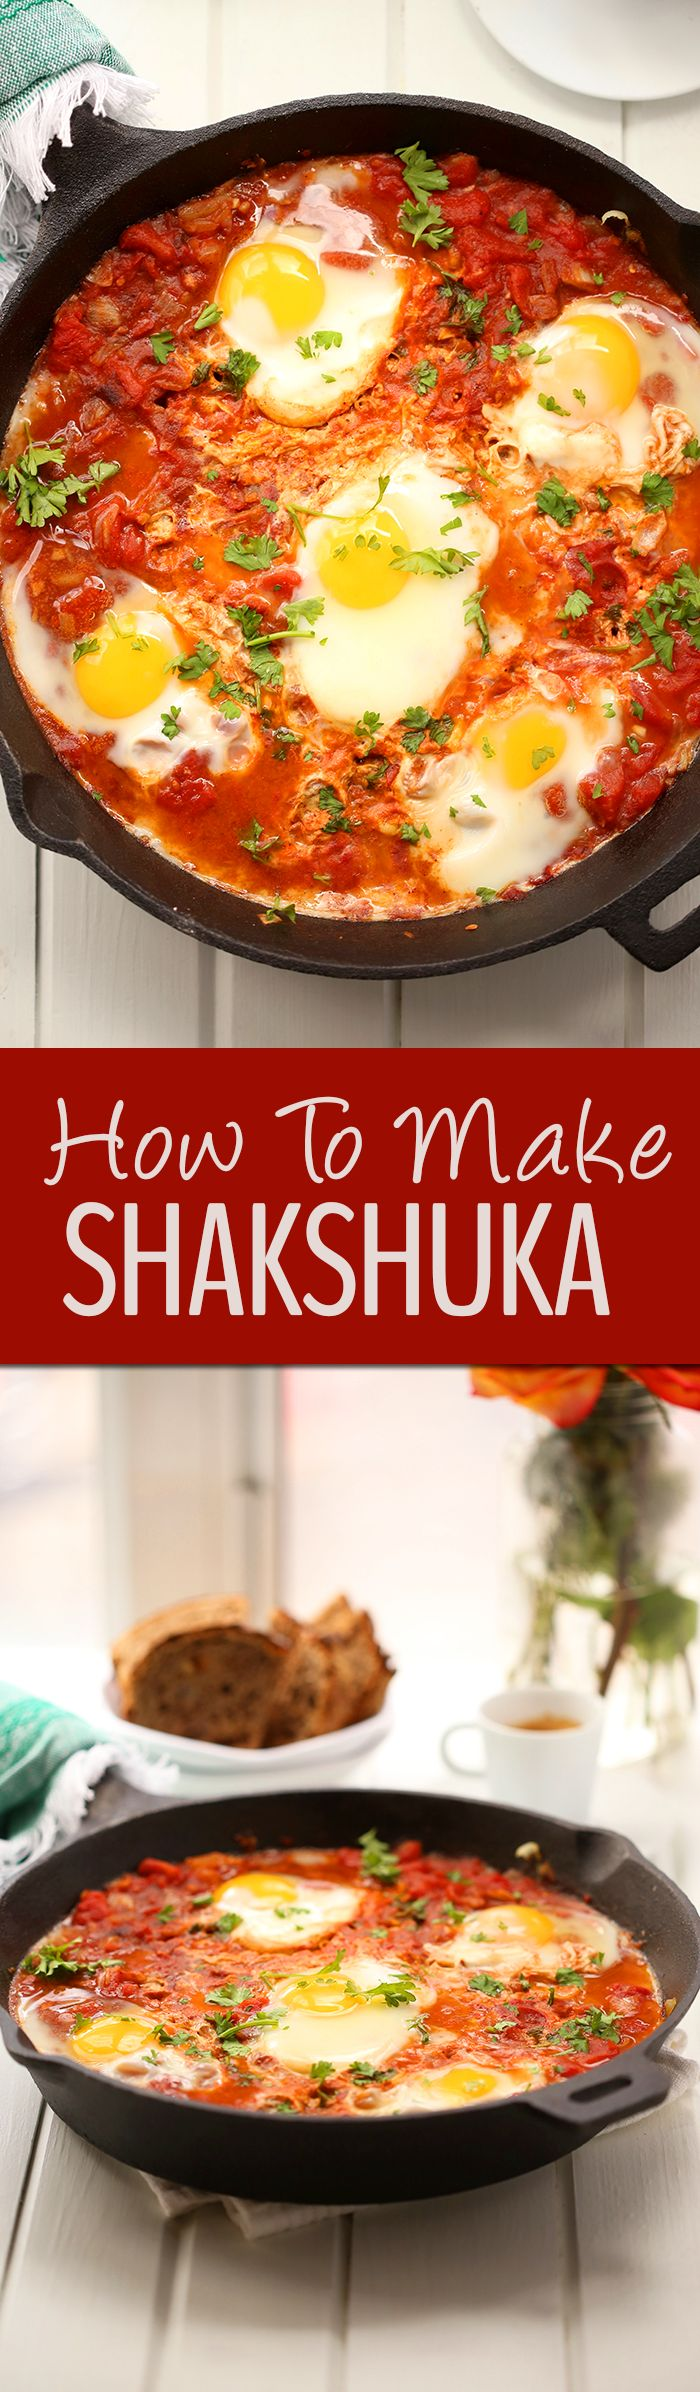 Have you ever wondered how to make shakshuka? This wonderful Middle Eastern poached egg dish made in a saucy tomato broth is the next best addition to your weekend brunch.